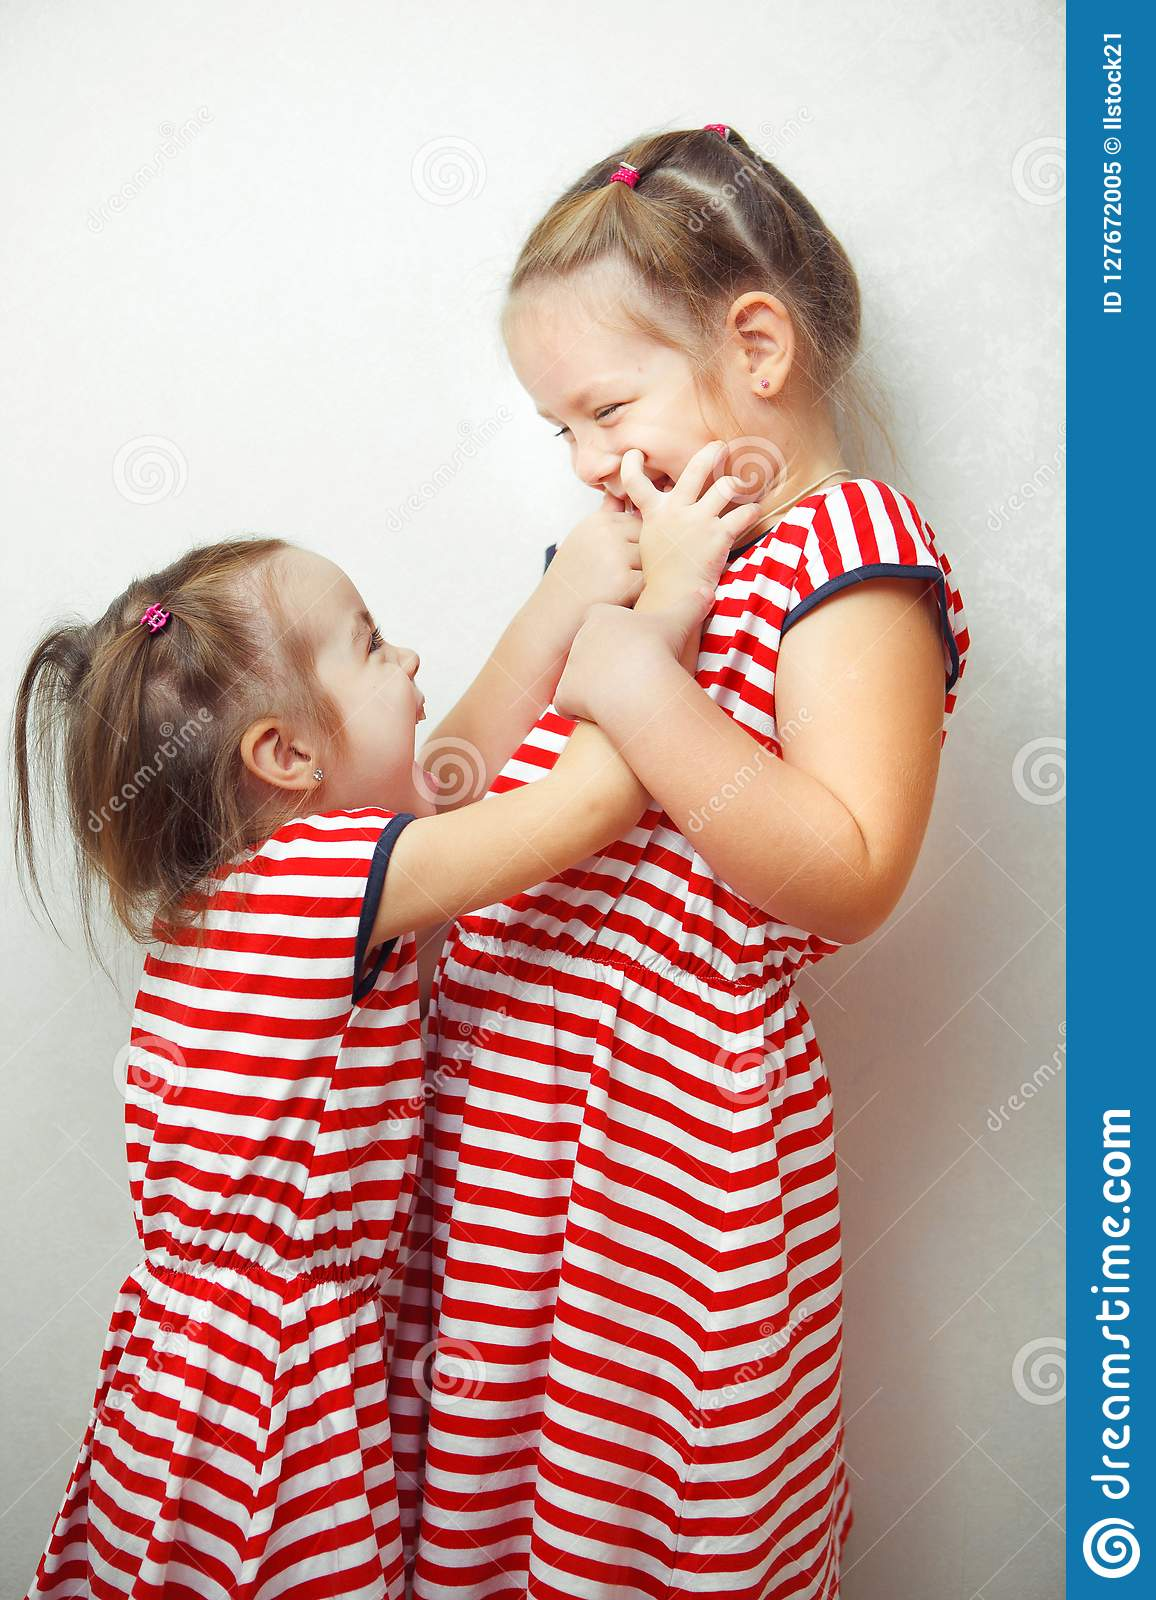 Sisters With Hairstyles And Same Dresses Having Fun Stock Image